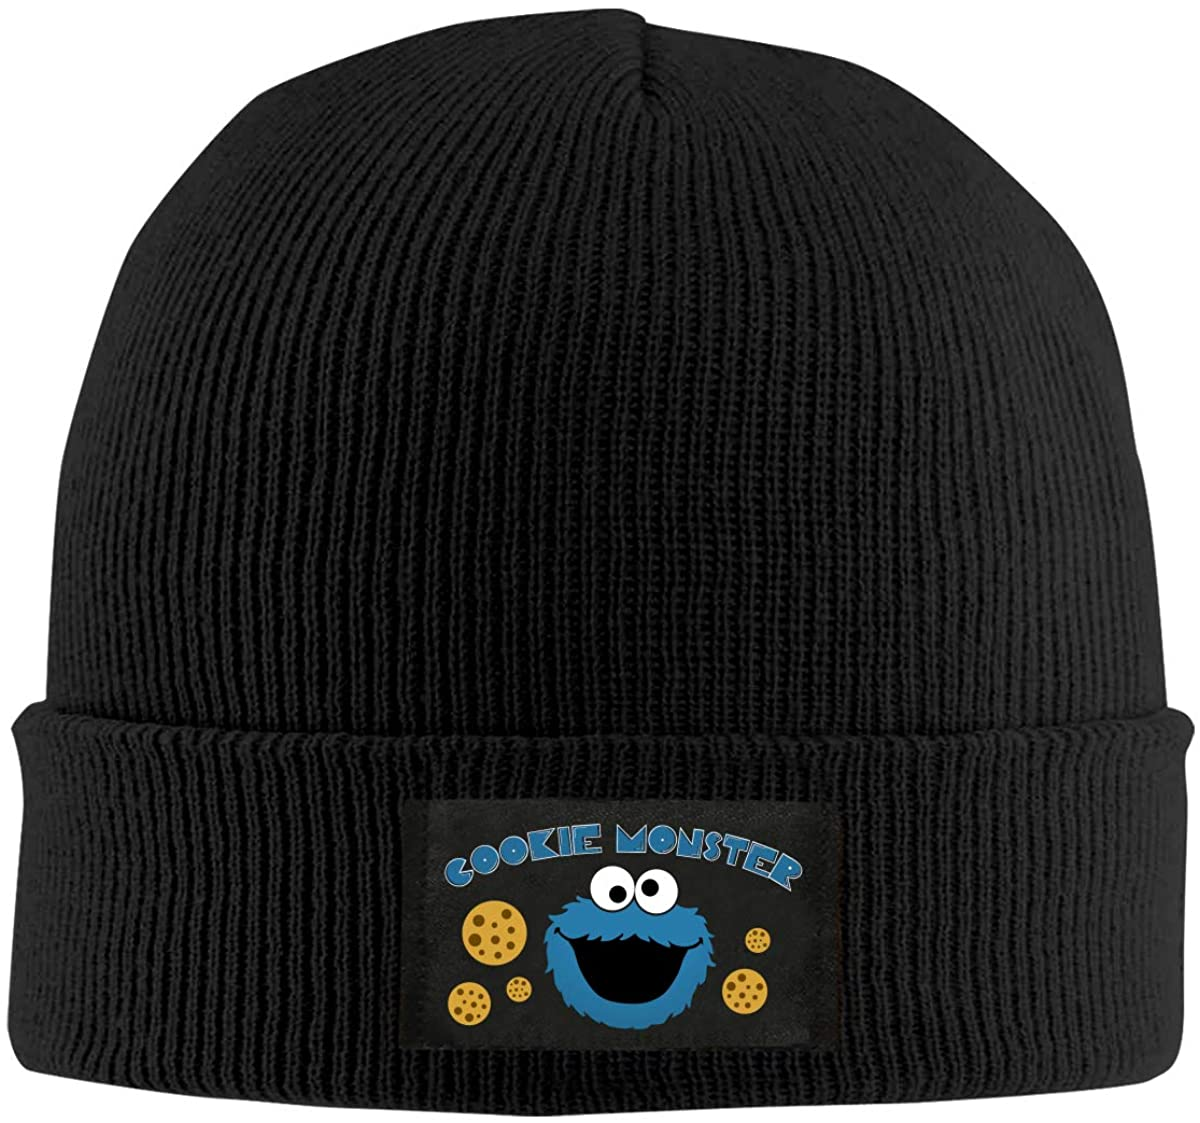 Monsters Who Love Cookies Knit Hat Winter Summer Cap Beanie Unisex Keep Warm and Windproof